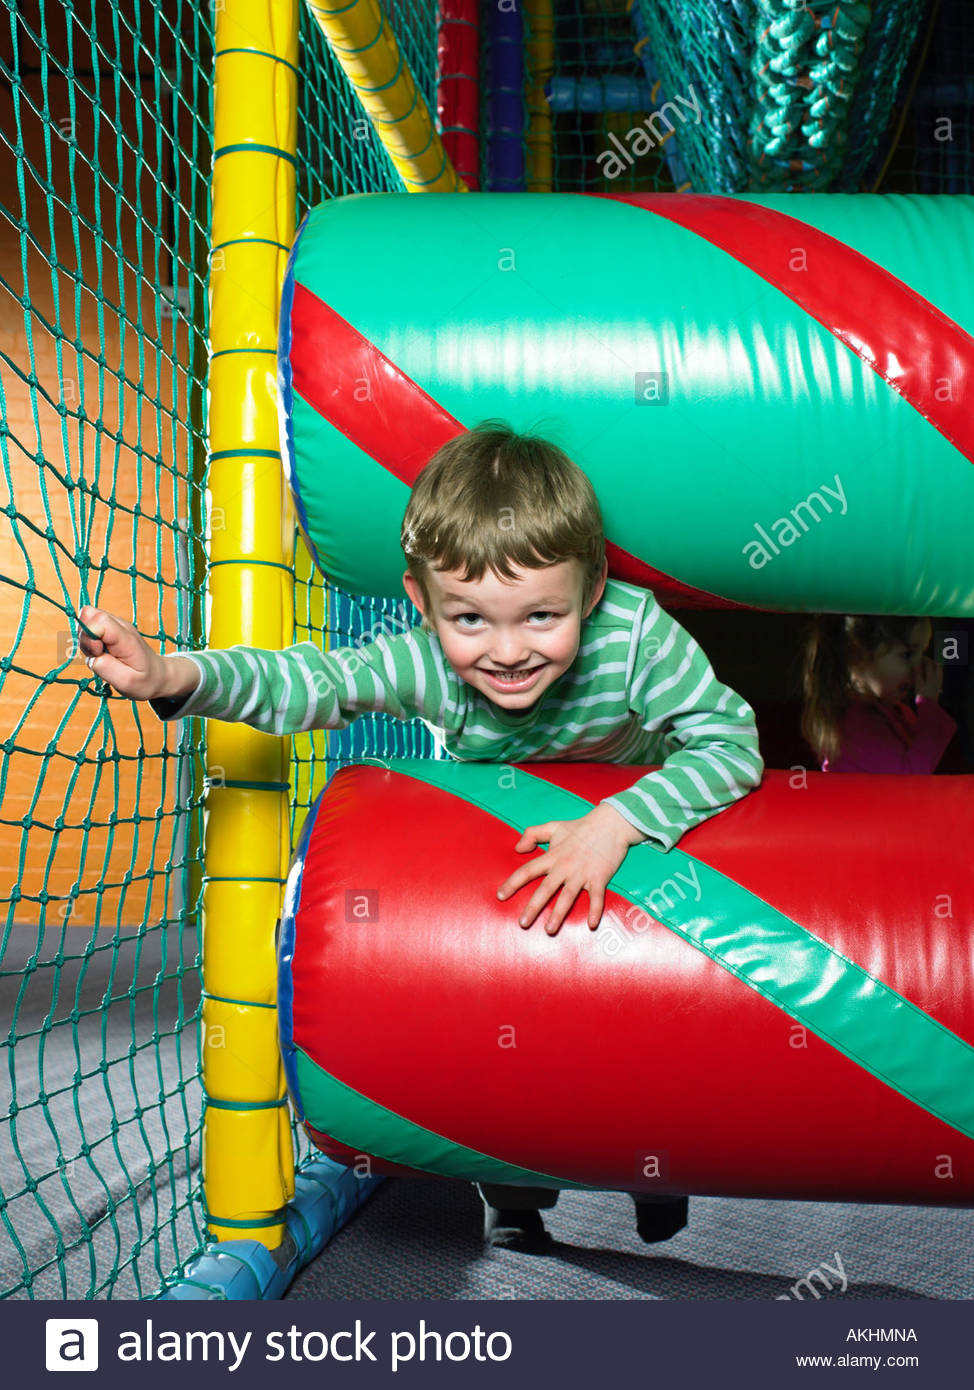 Boy in a soft play area - Stock Image